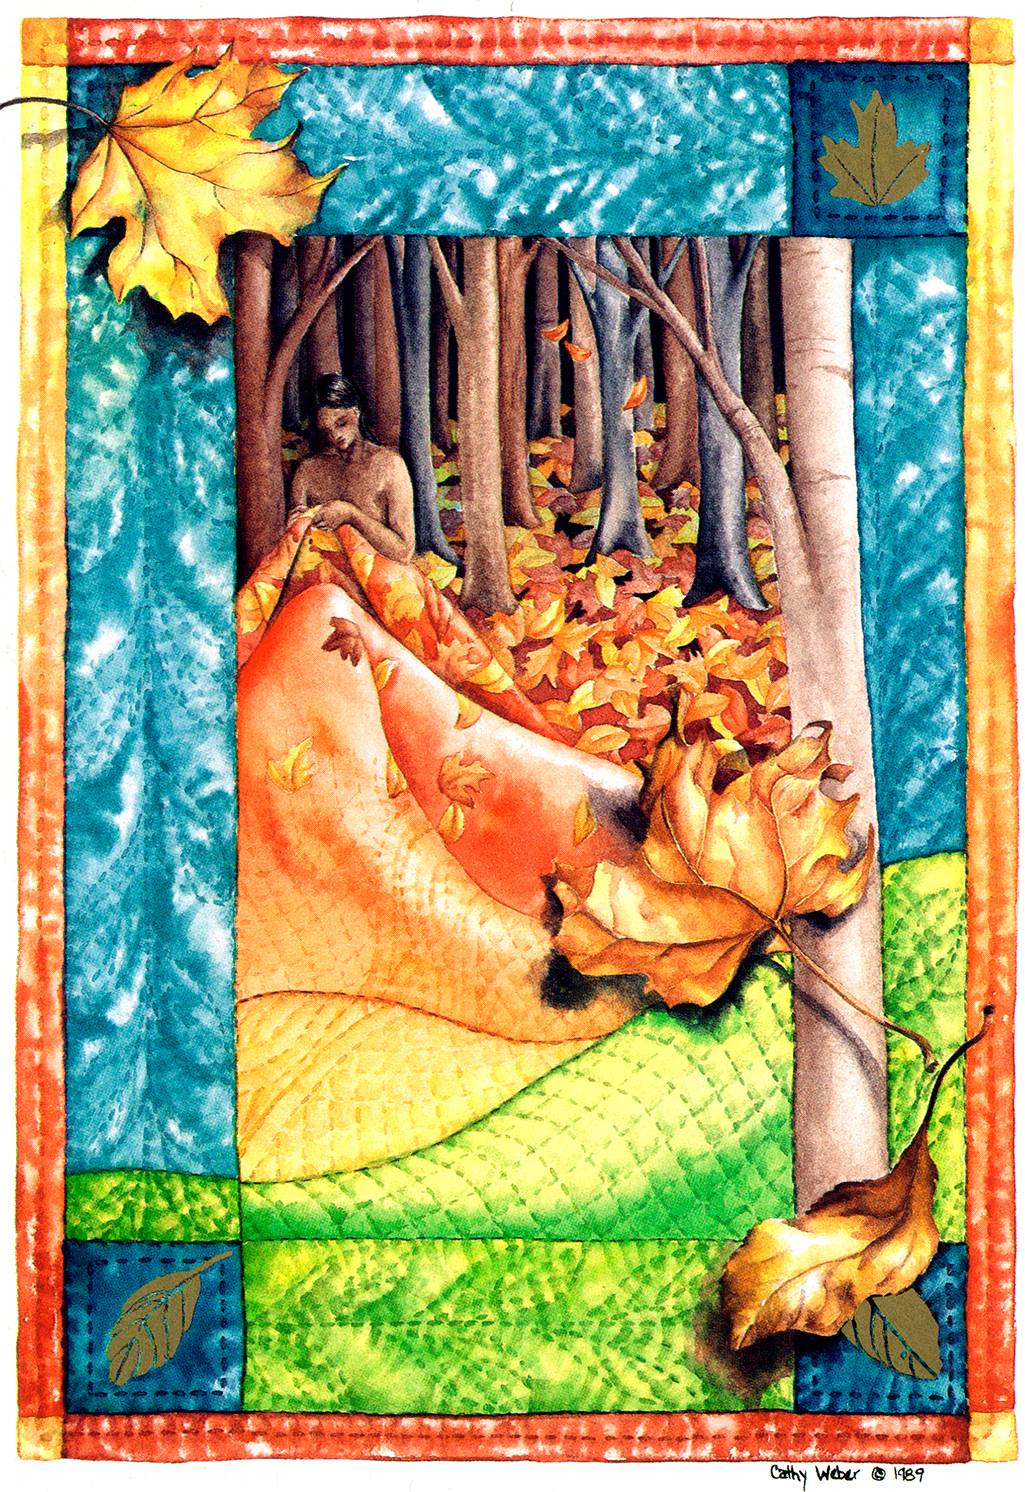 cathy weber - art - holy card - holycard - quilt - watercolor - creation - stitcher - stitch - montana- fall - leaves - quilter